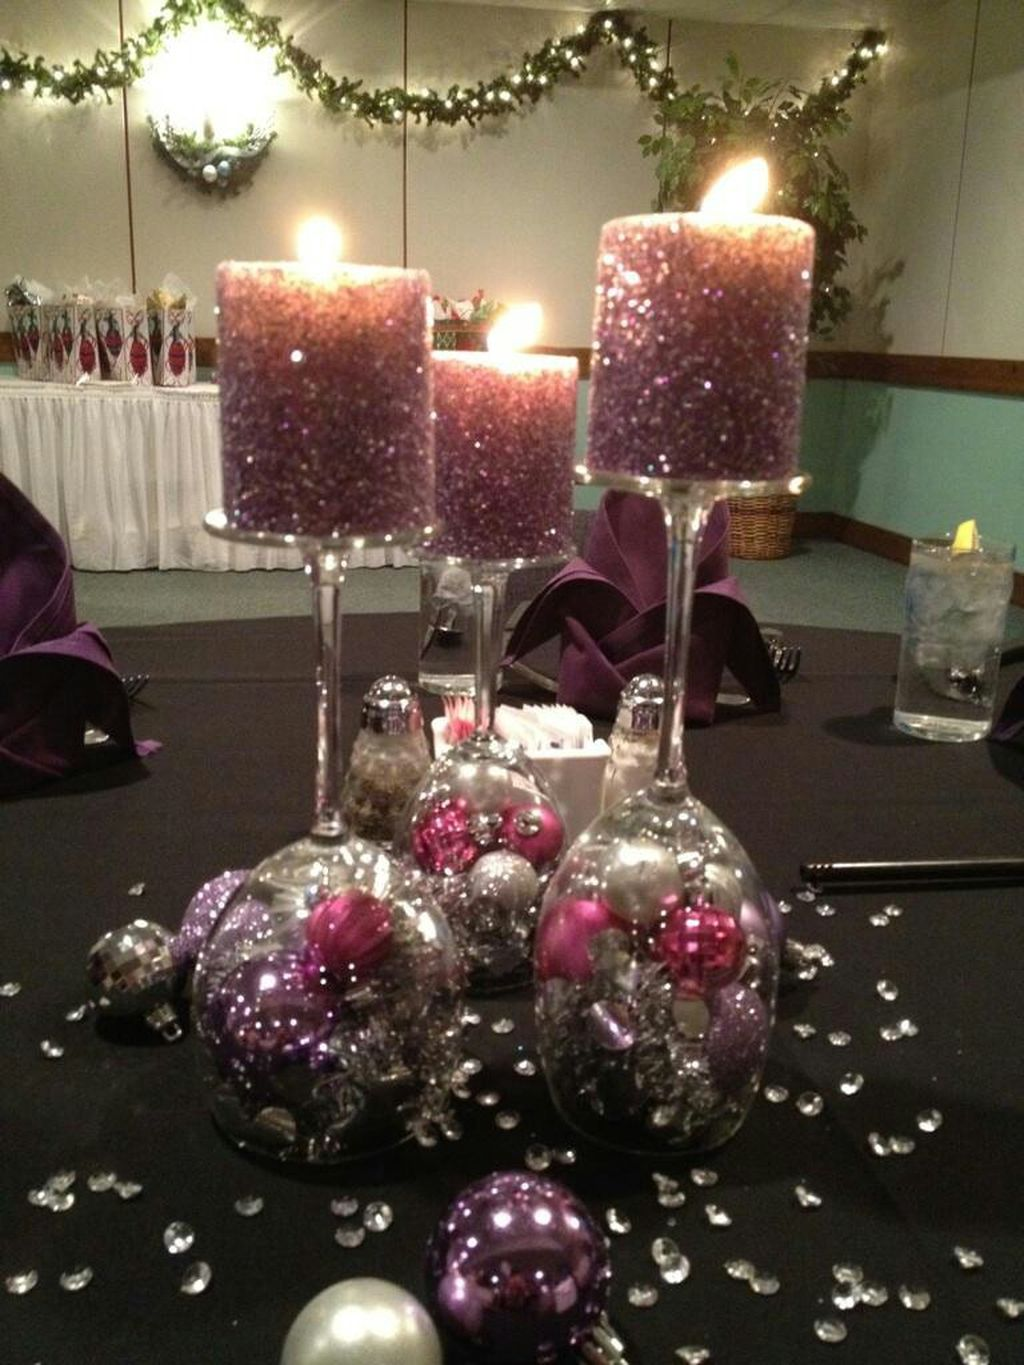 Inspiring Modern Rustic Christmas Centerpieces Ideas With Candles 39